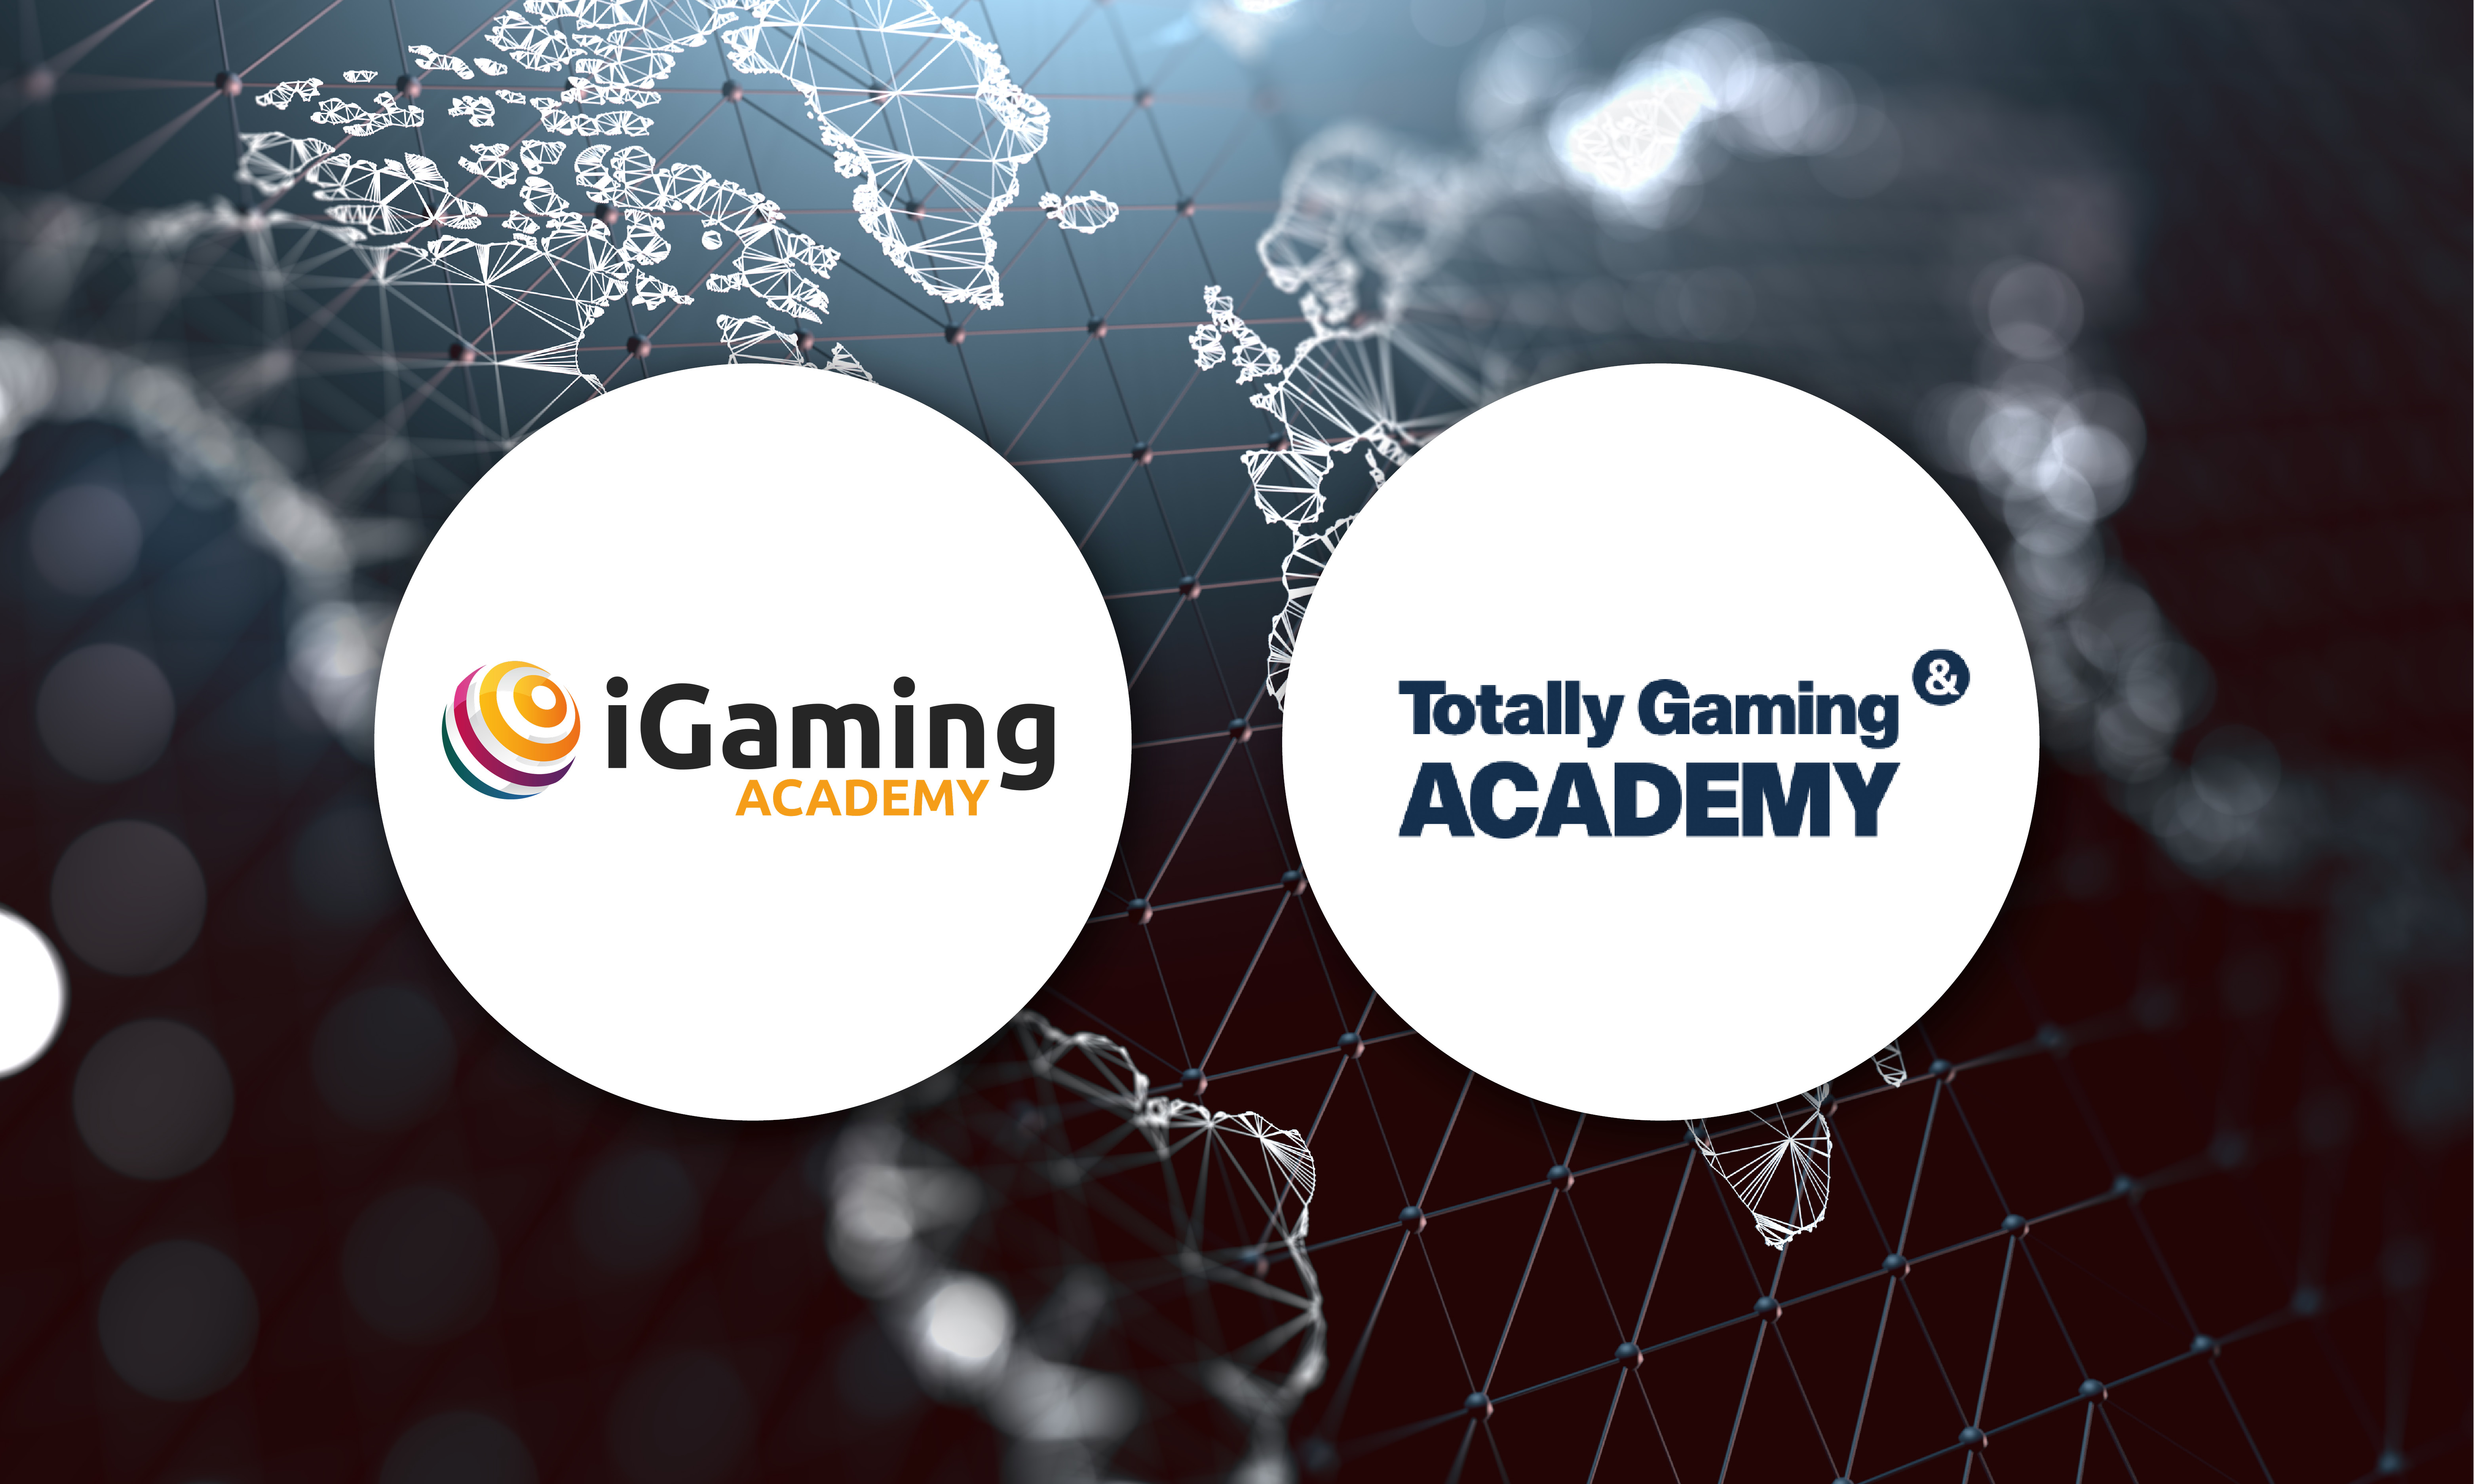 Over 150 bookings for iGaming Academy and Totally Gaming Academy  joint webinars